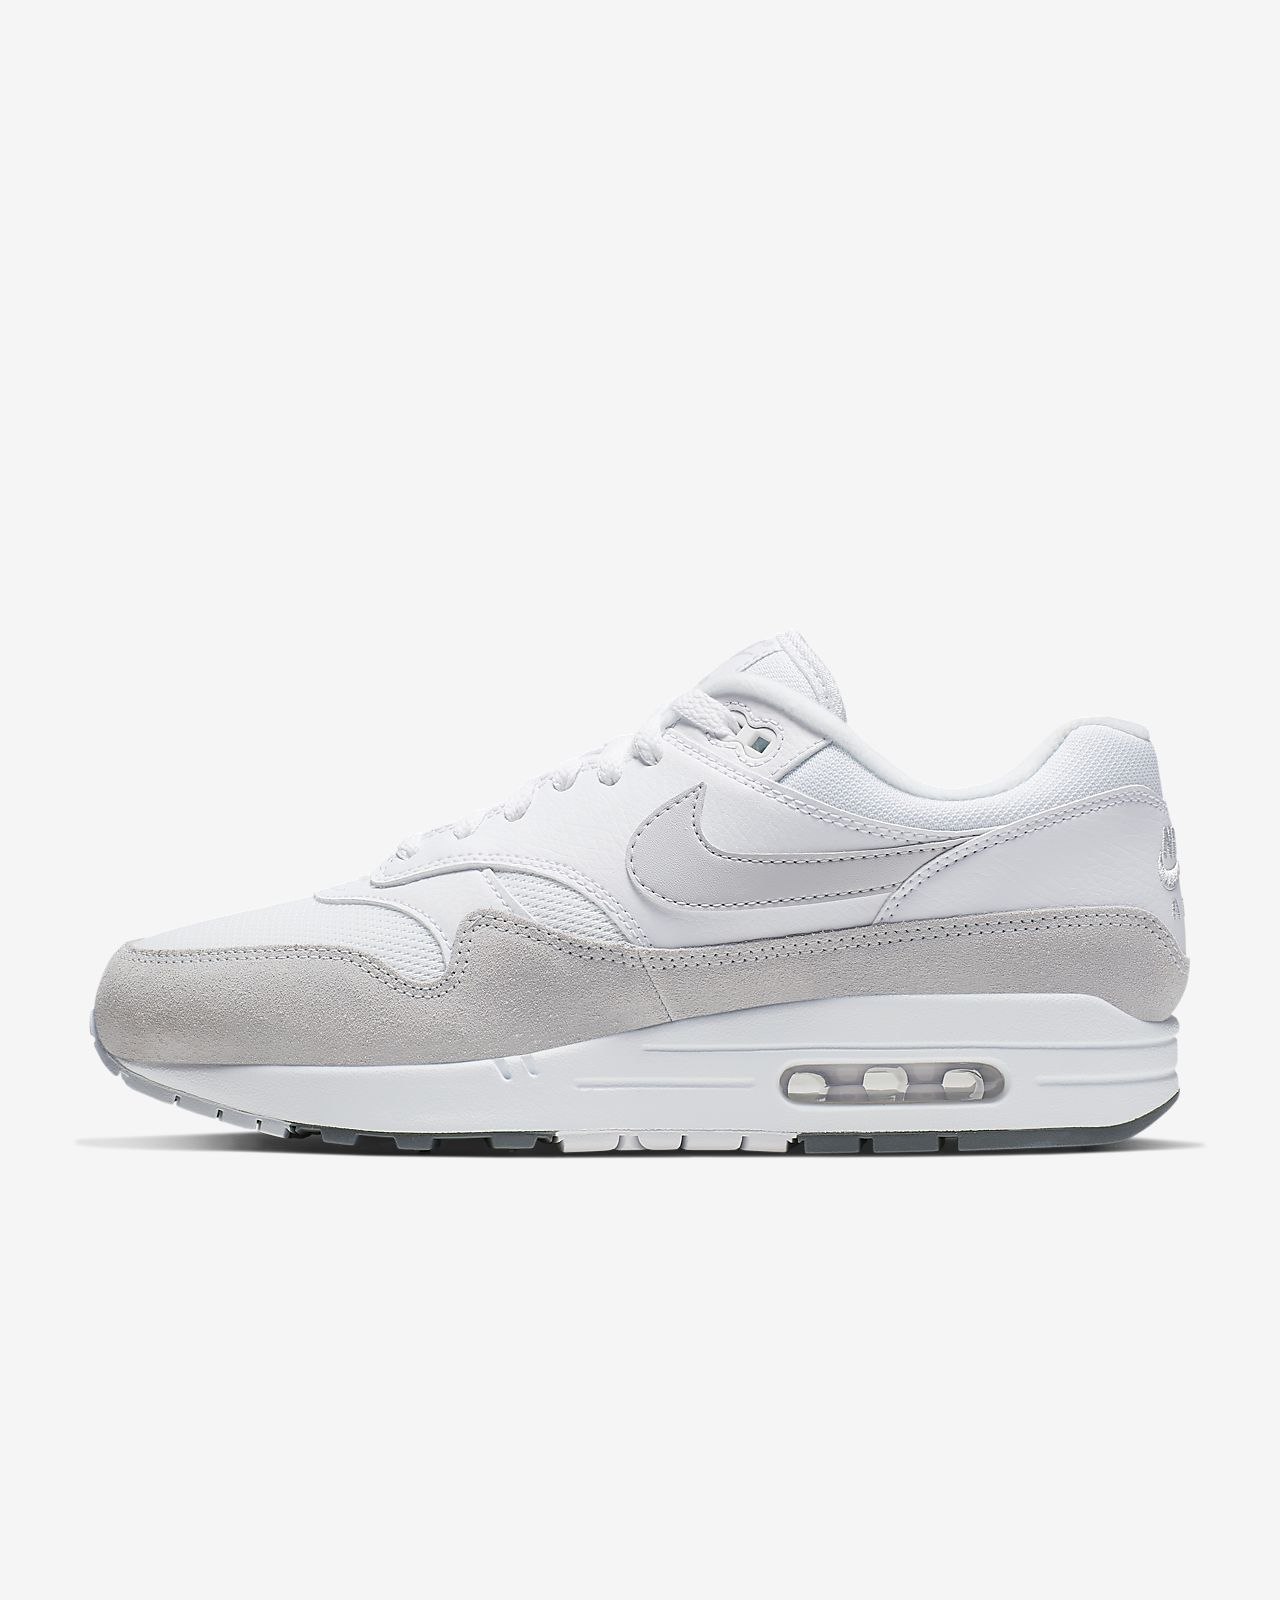 77a5e1d465 Nike Air Max 1 Men's Shoe. Nike.com